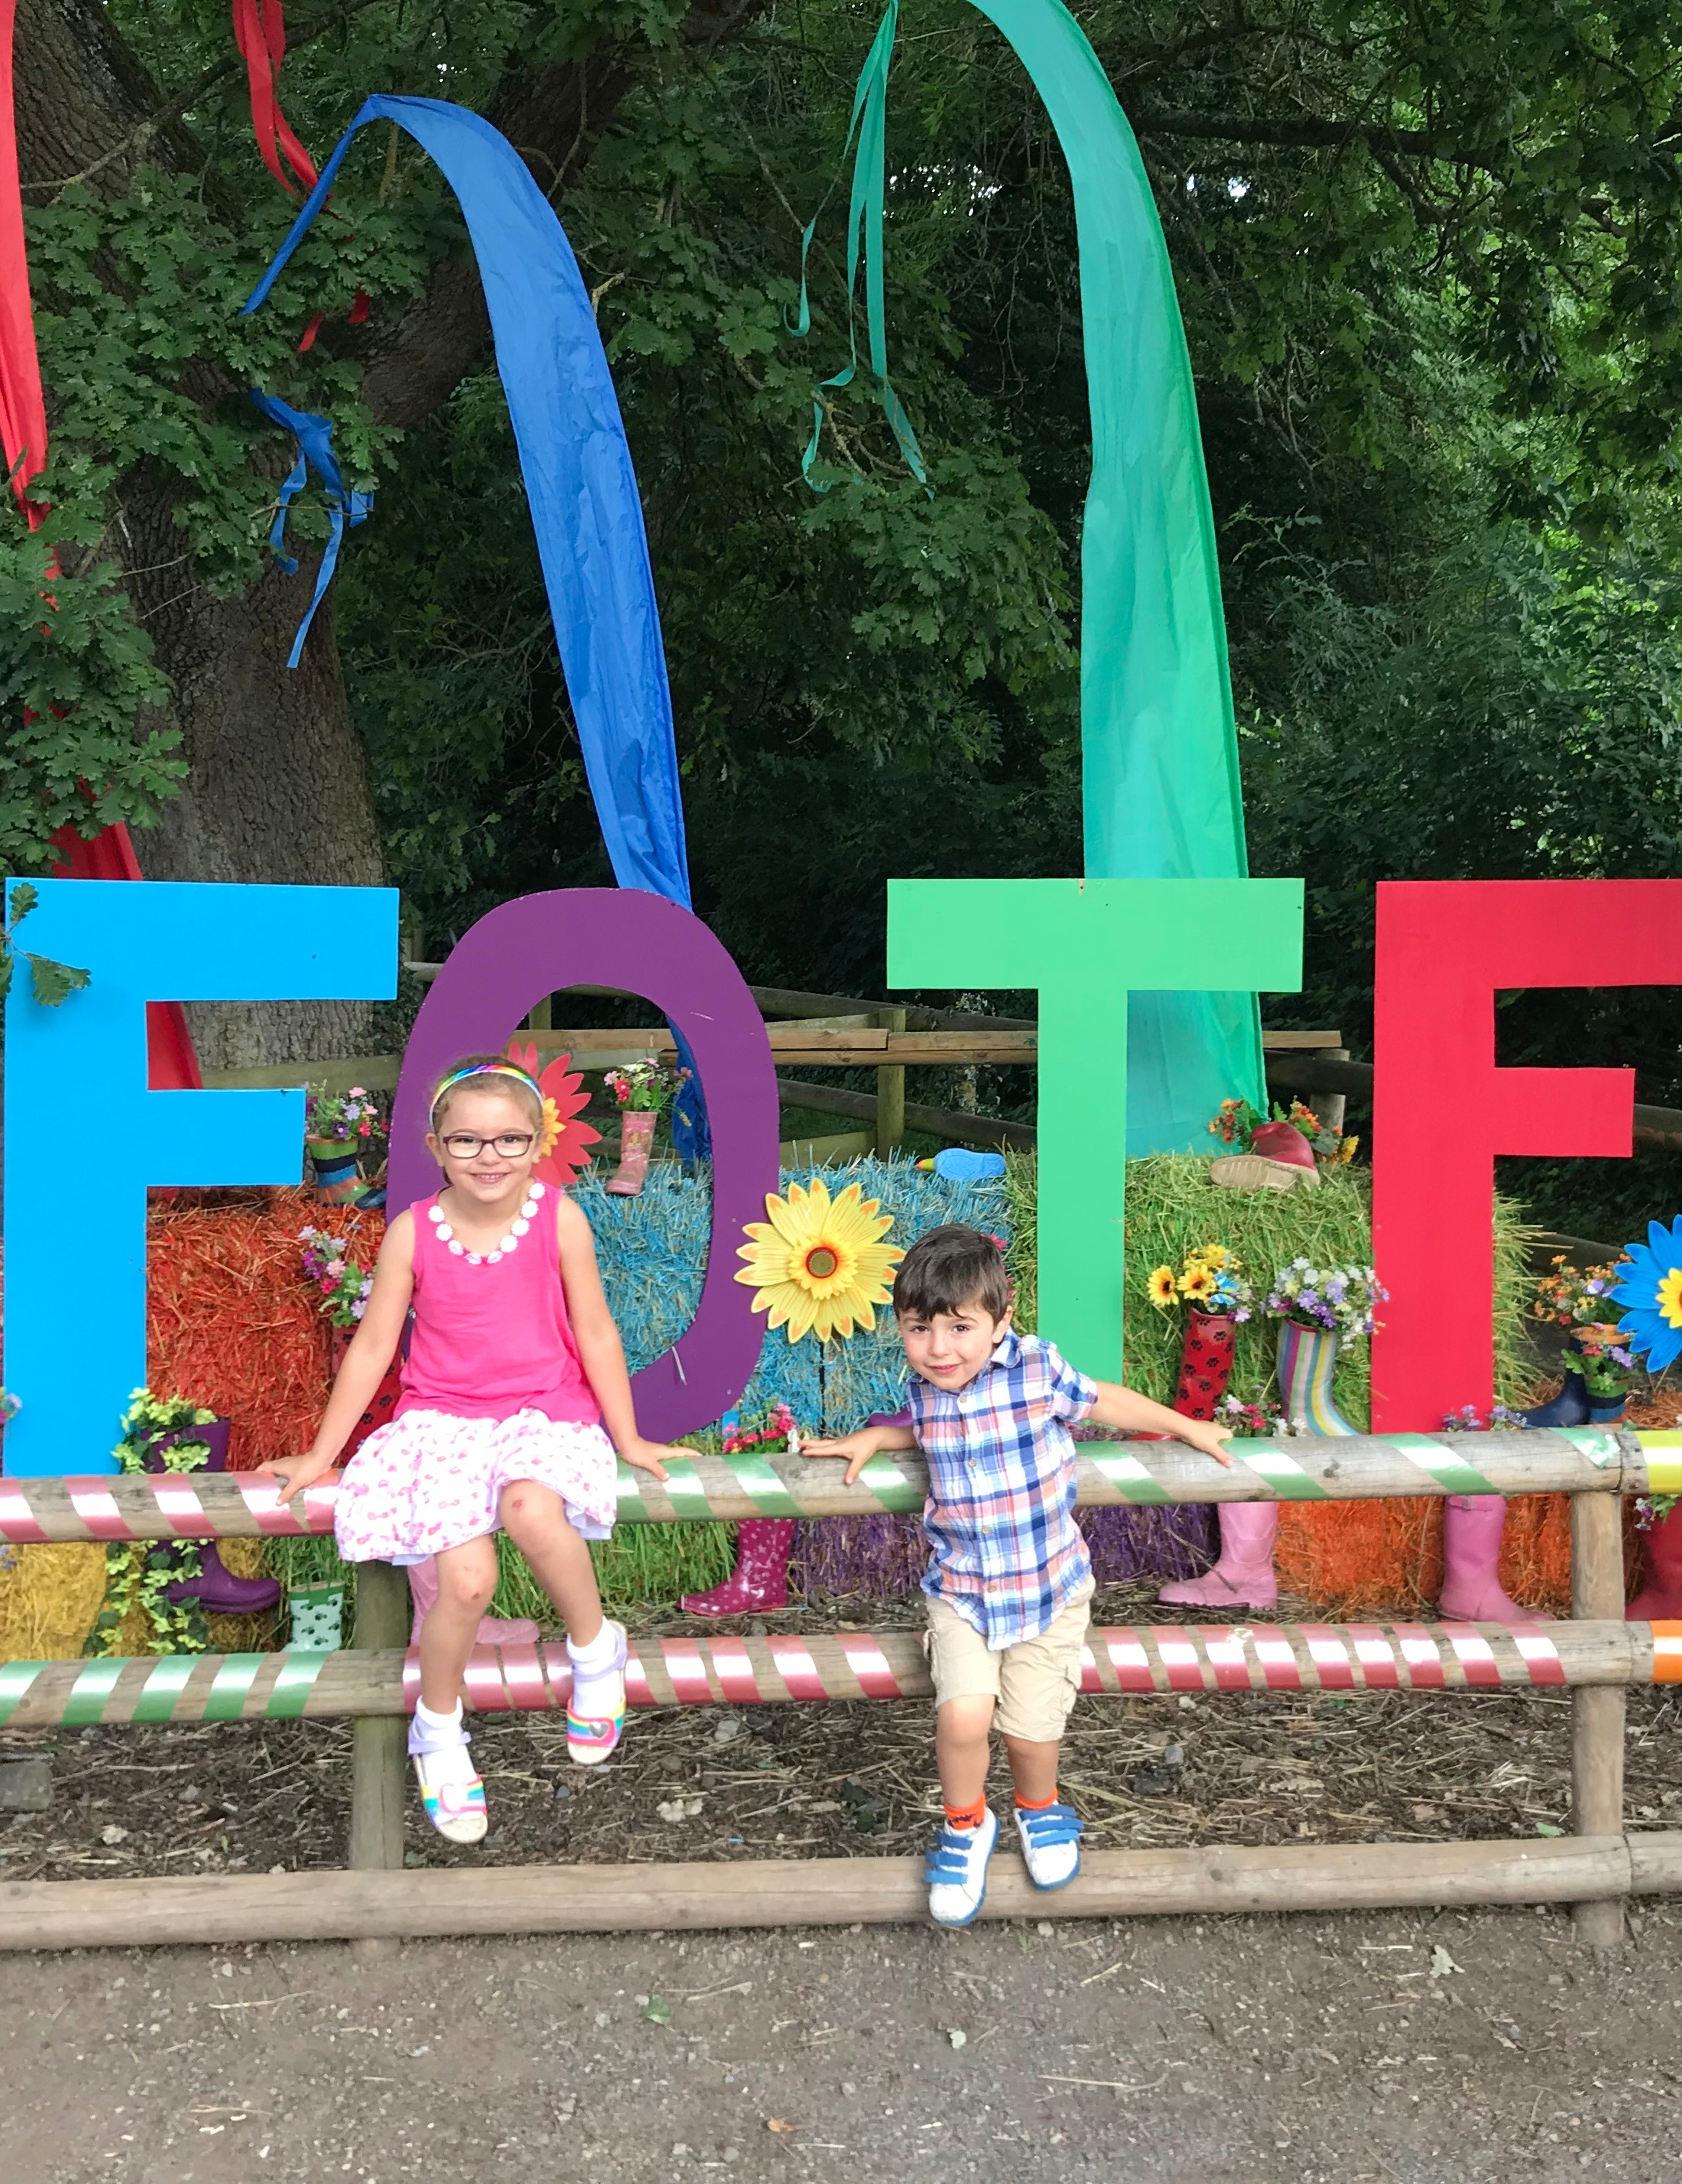 The Perfect Family Day Out at Godstone Farm, Surrey